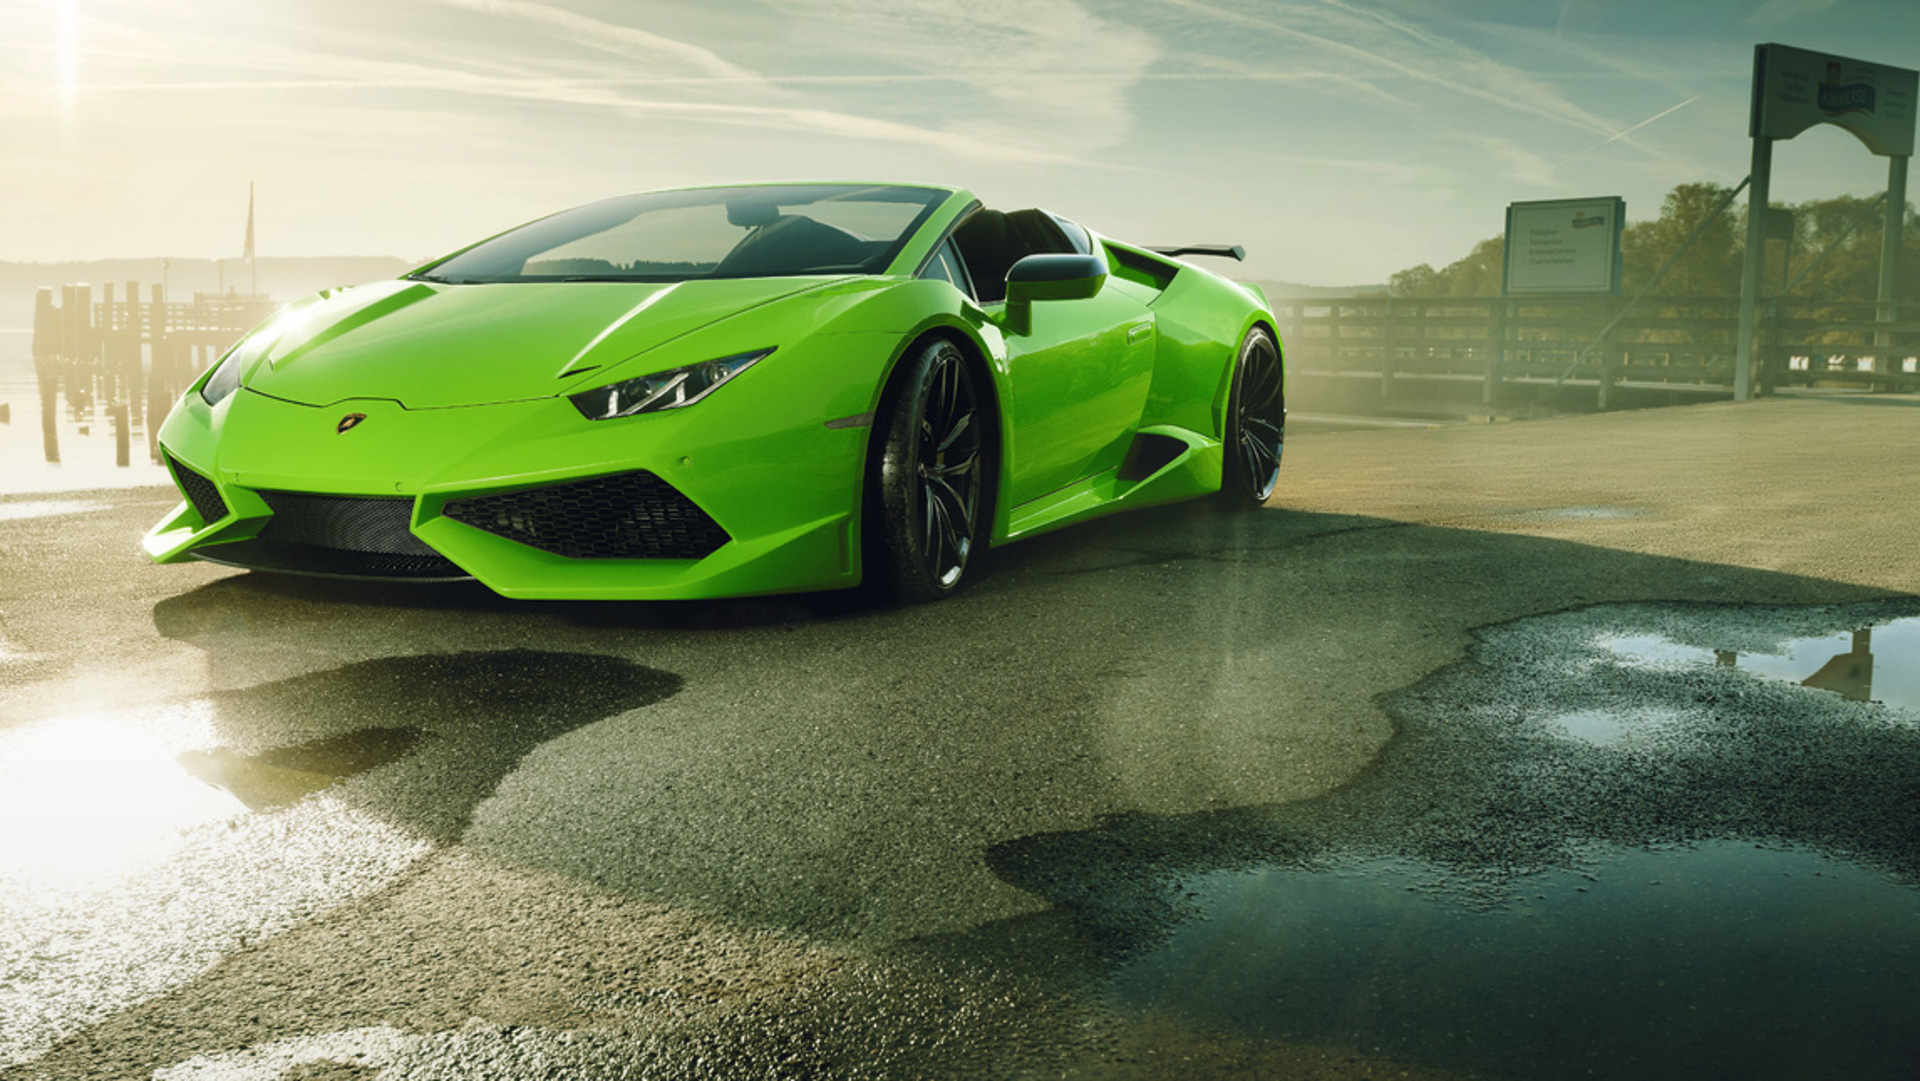 Novitec S Widebody Lamborghini Huracan Spyder Is A Supercharged Summertime Stunner The Drive